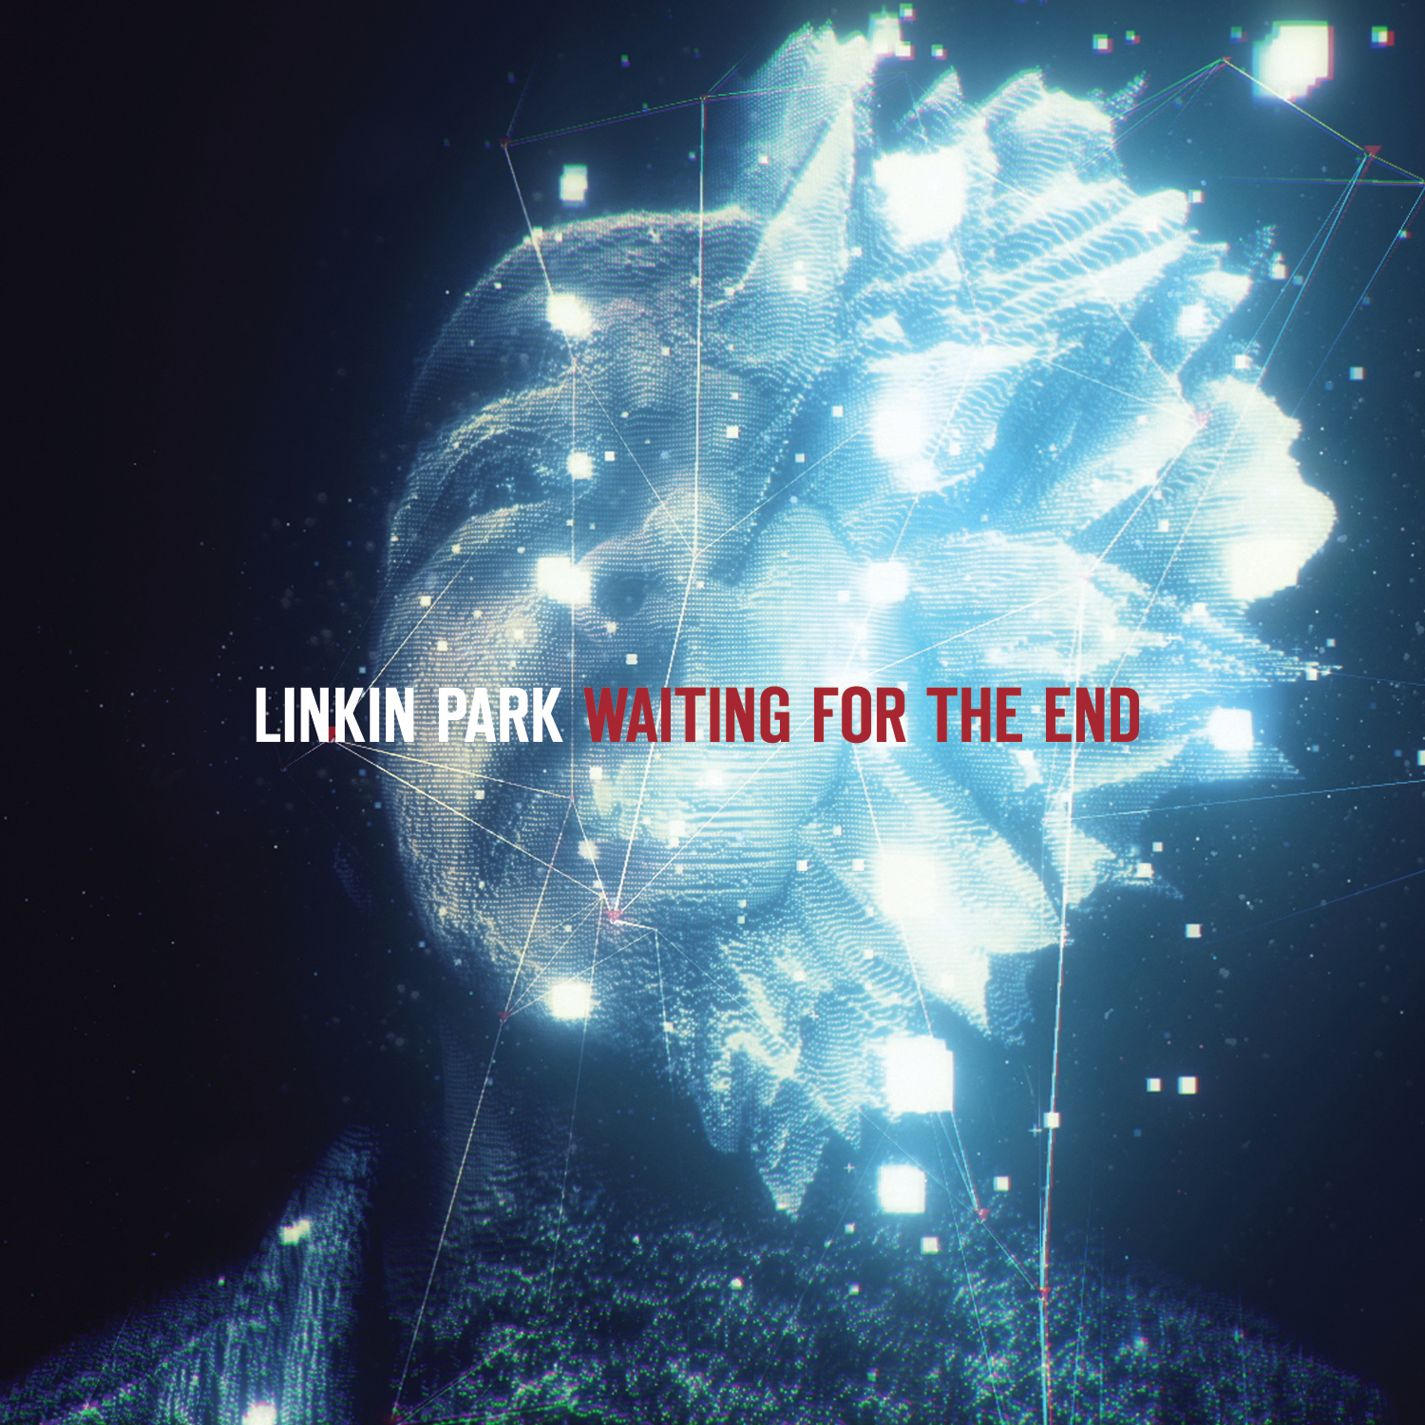 00-linkin_park_-_waiting_for_the_end-web-2010-l2m_int.jpg